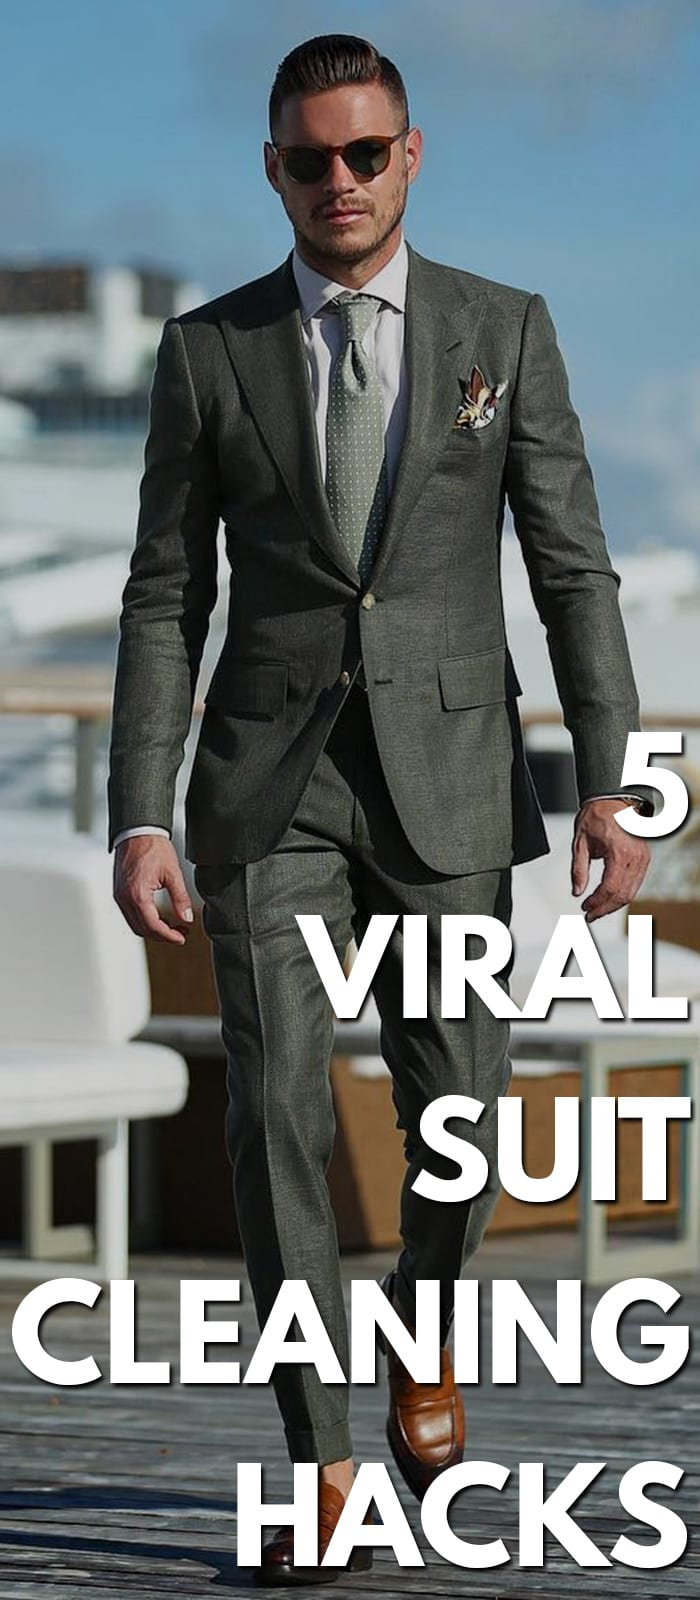 5 Viral Suit Cleaning Hacks